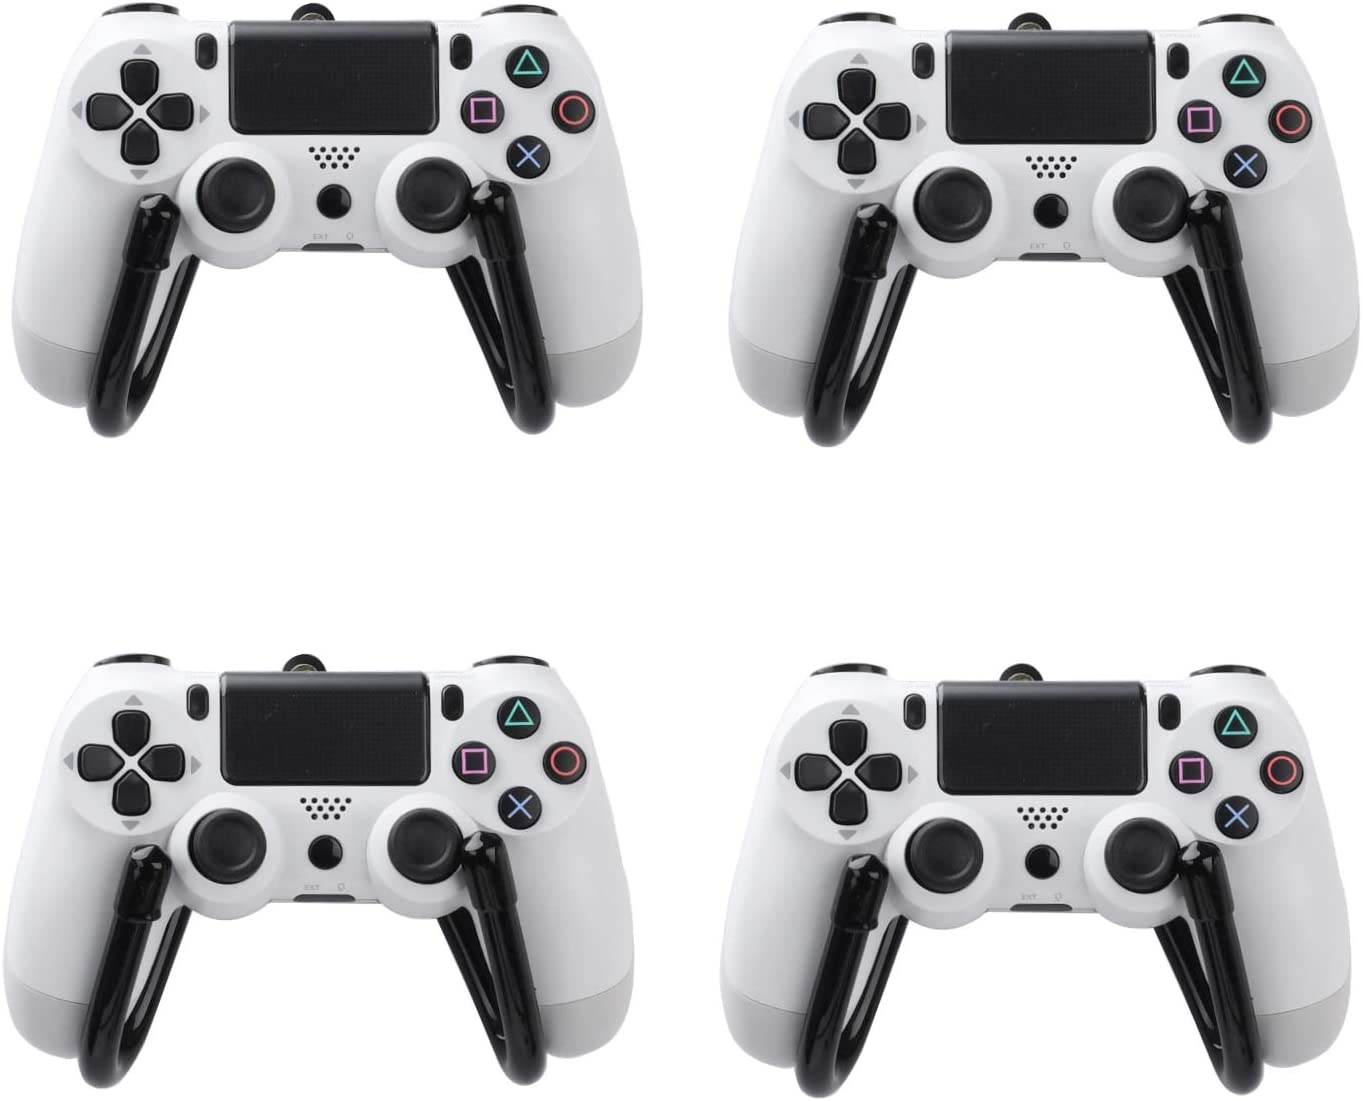 4 Pack Small Universal Game Controller Organizer Wall Mount Holder Hanger Rack Hook Stand for PS4 Xbox One Switch Pro Game Controller - Not Include Game Controllers